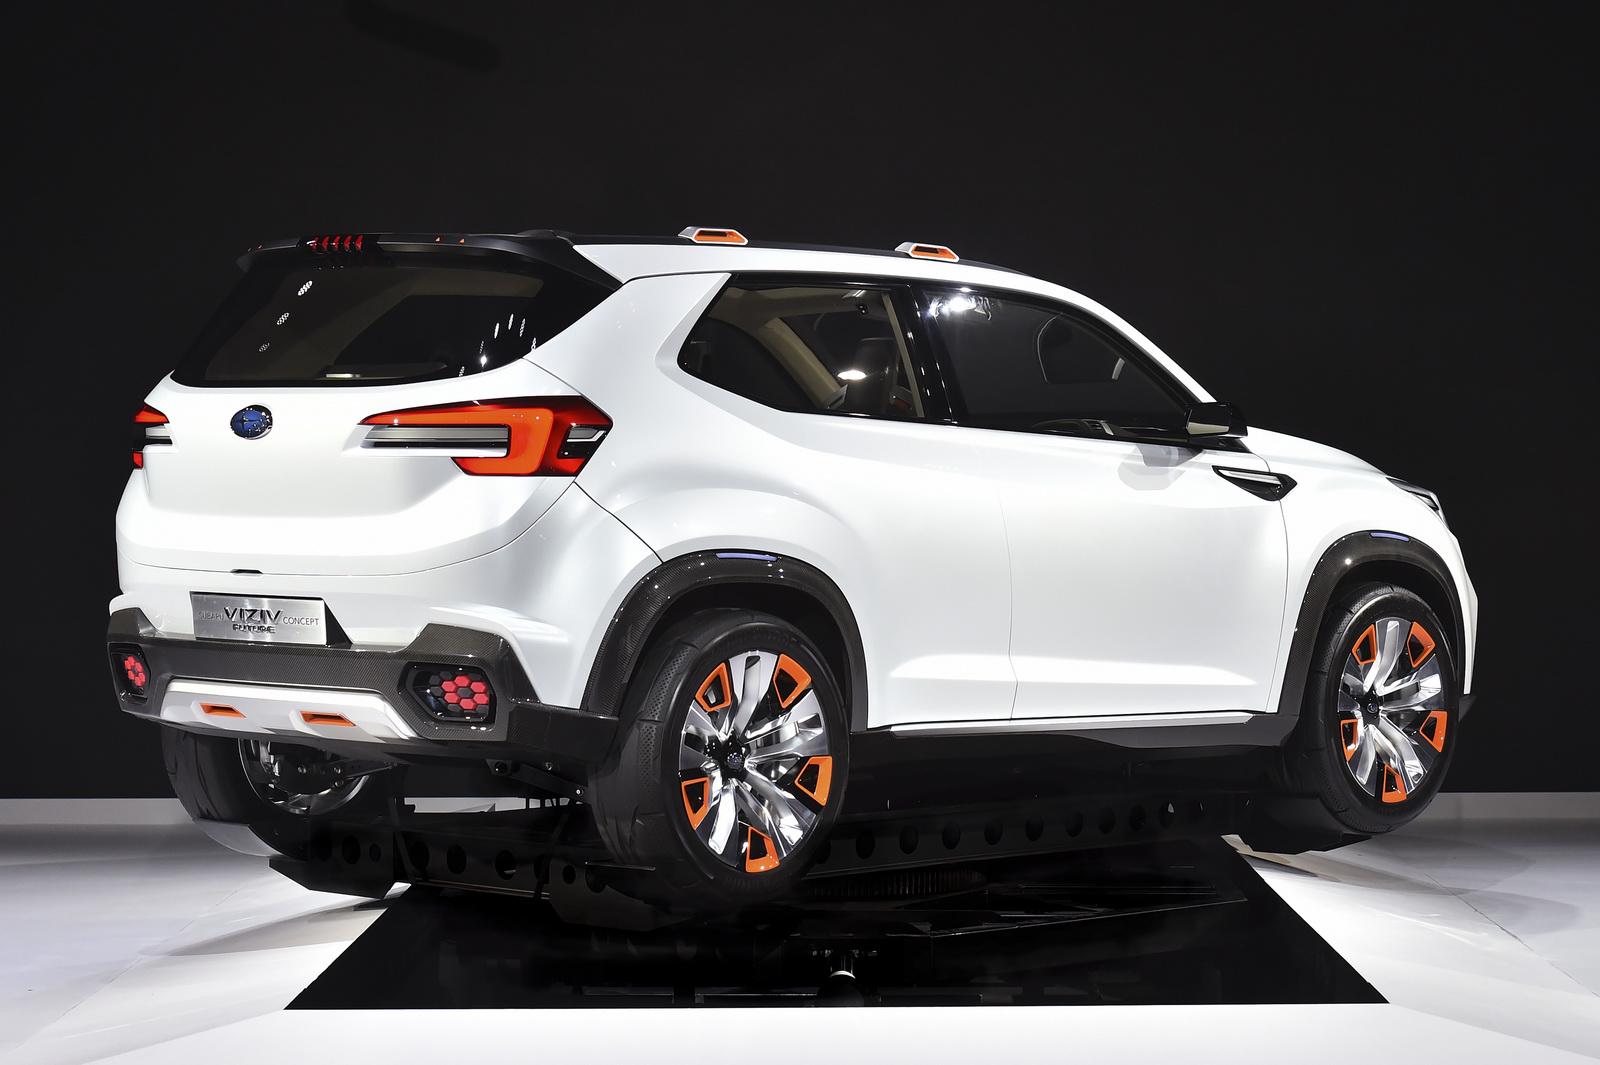 2019 Subaru Tribeca photo - 1